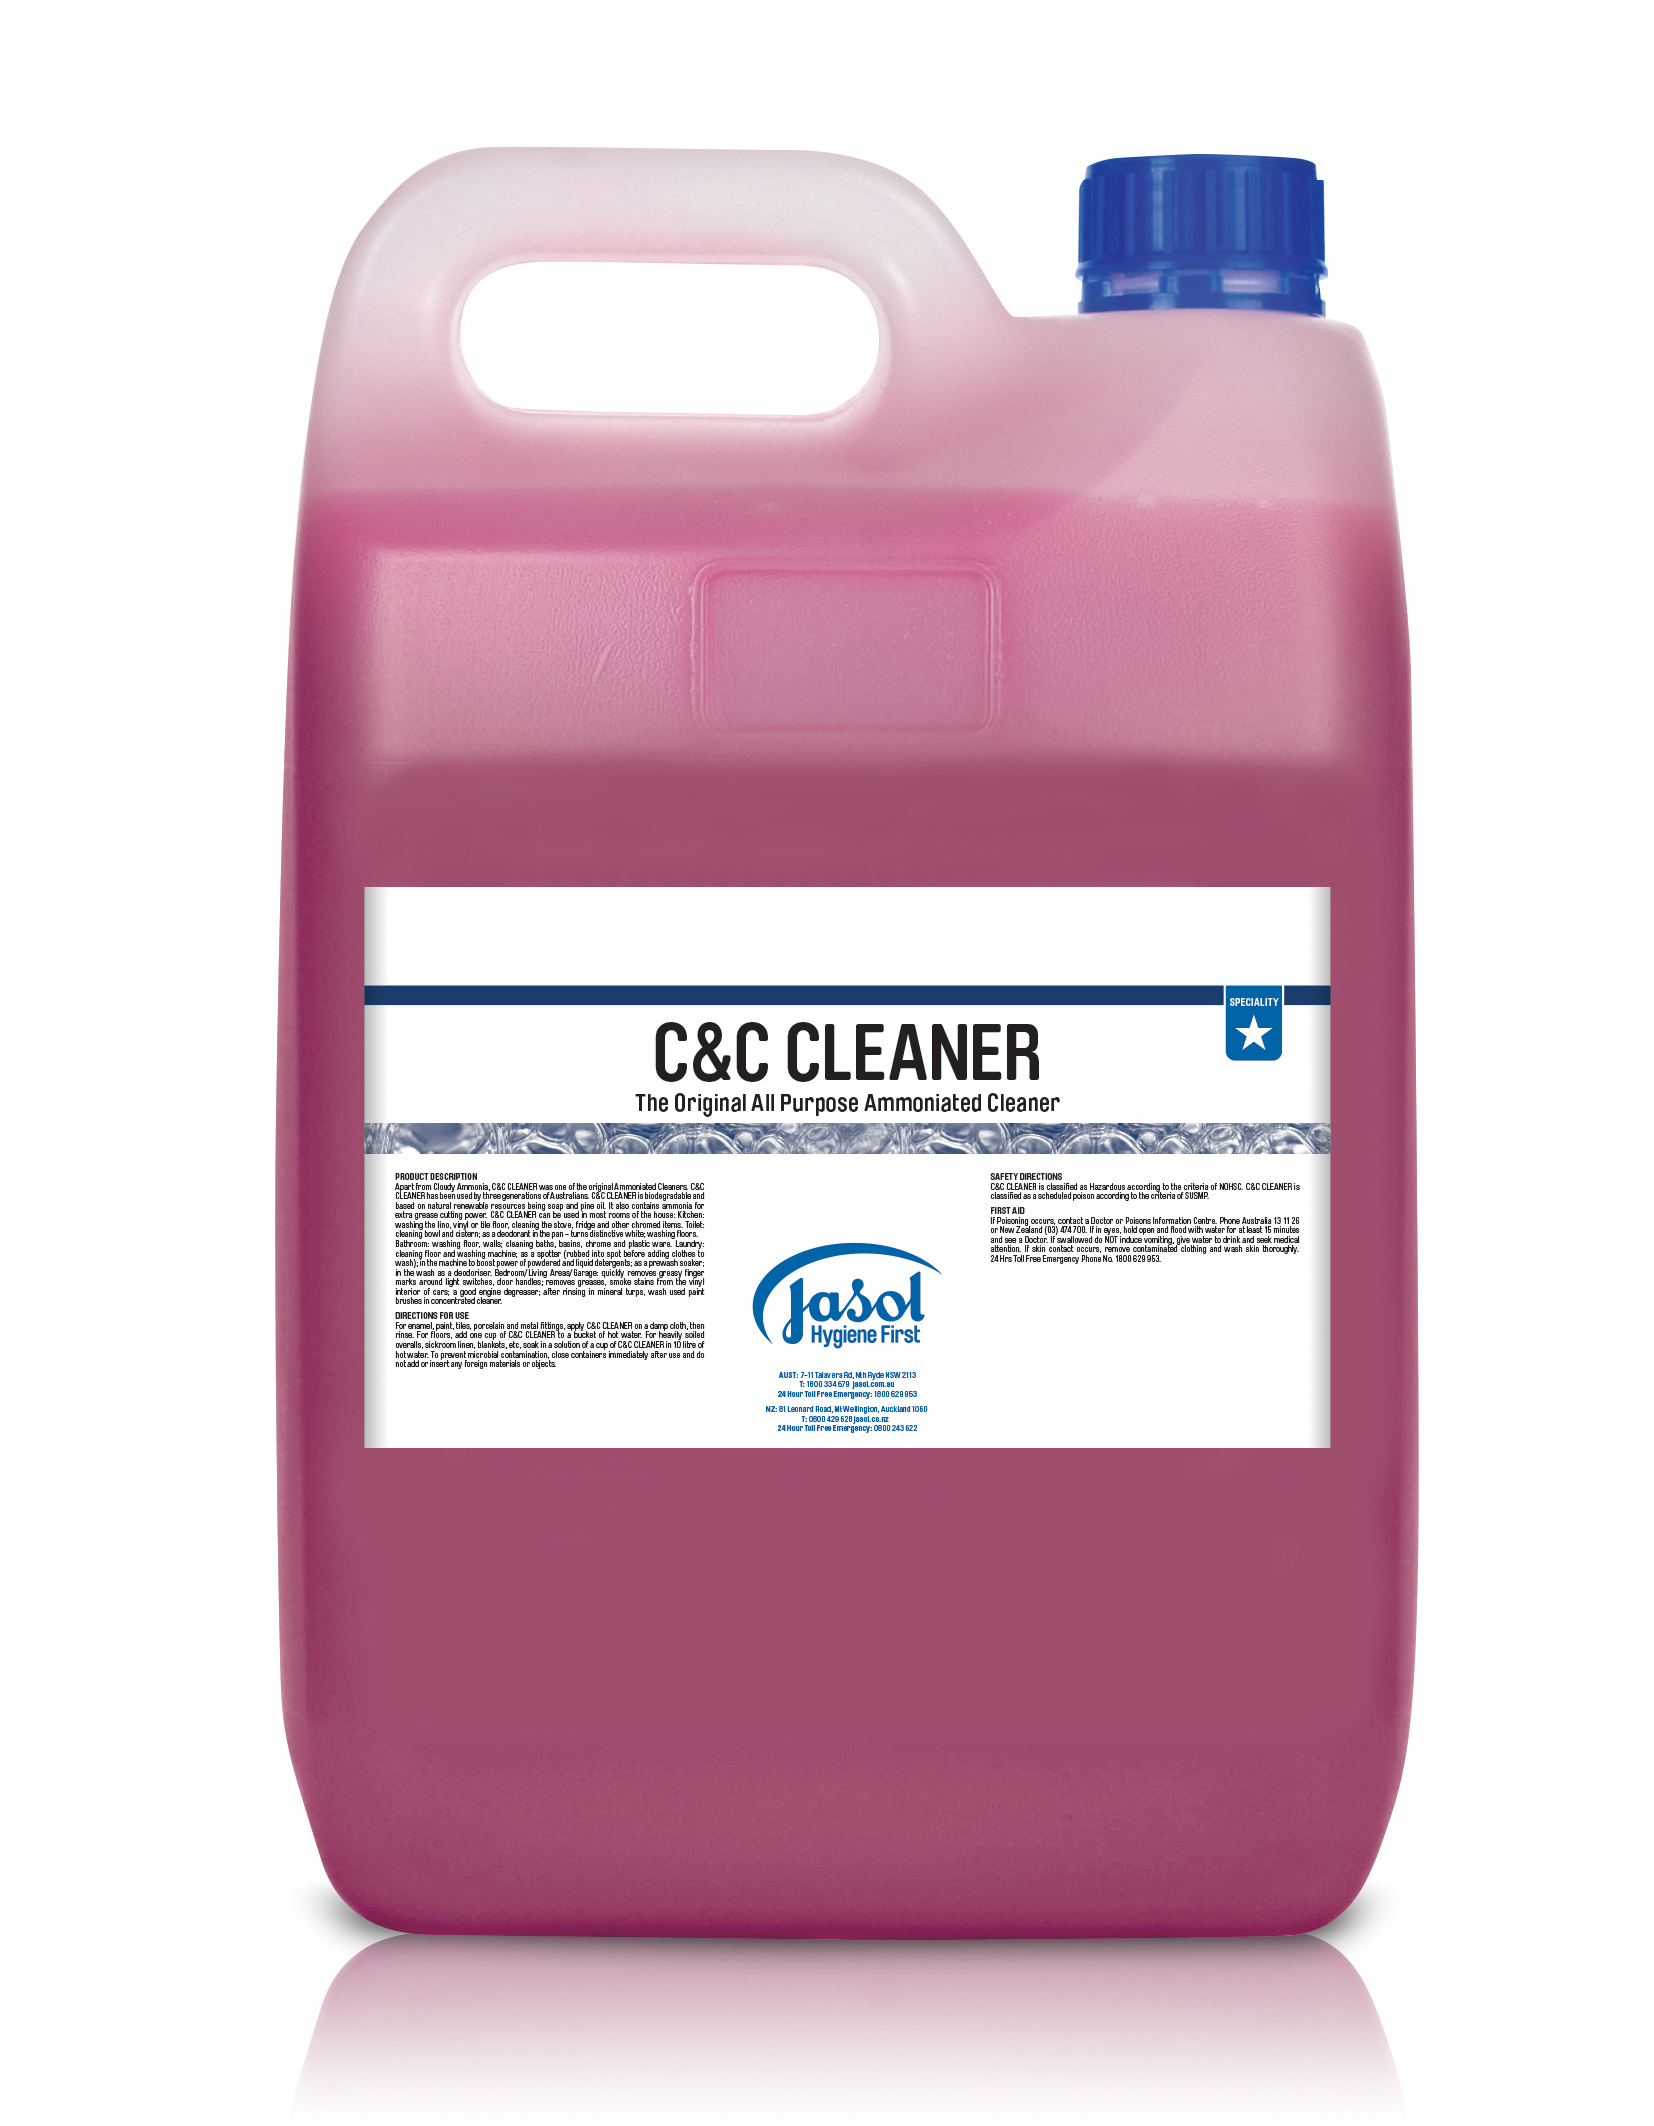 C&C Cleaner